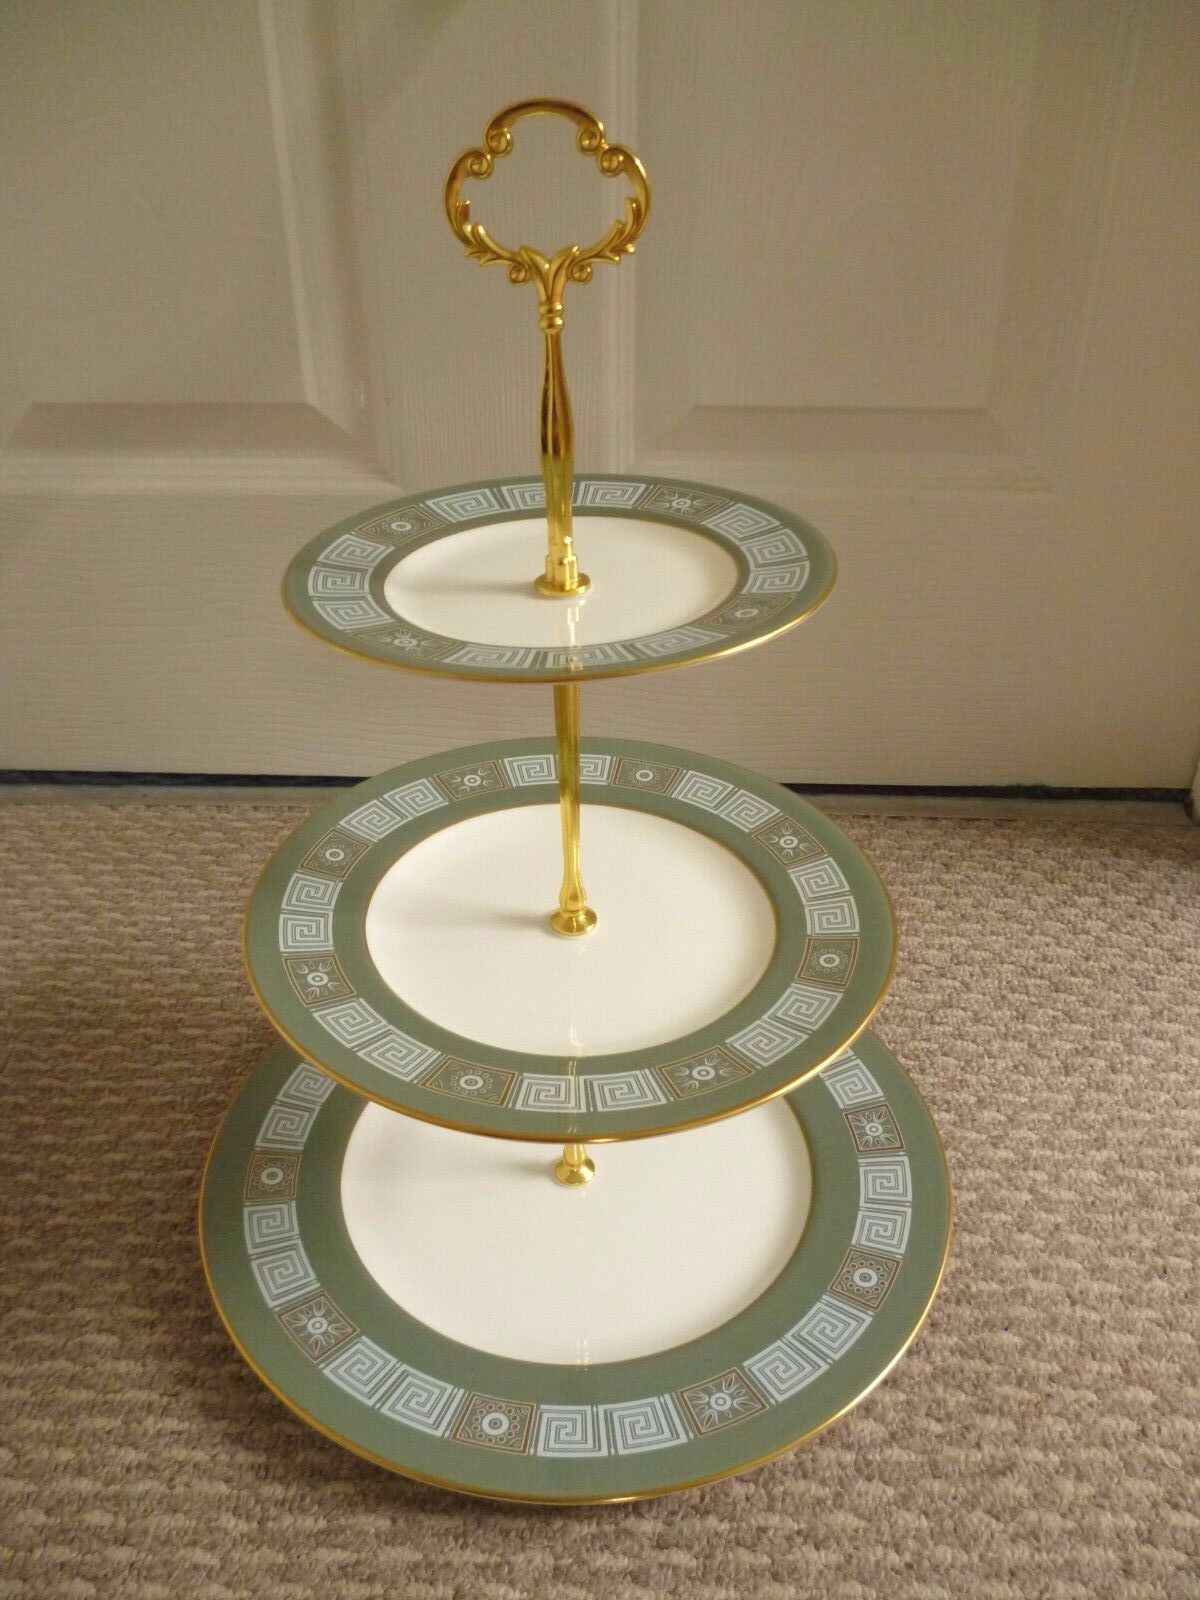 Wedgwood Asia R4310 3 Tier Cake Stand 163 15 00 Picclick Uk